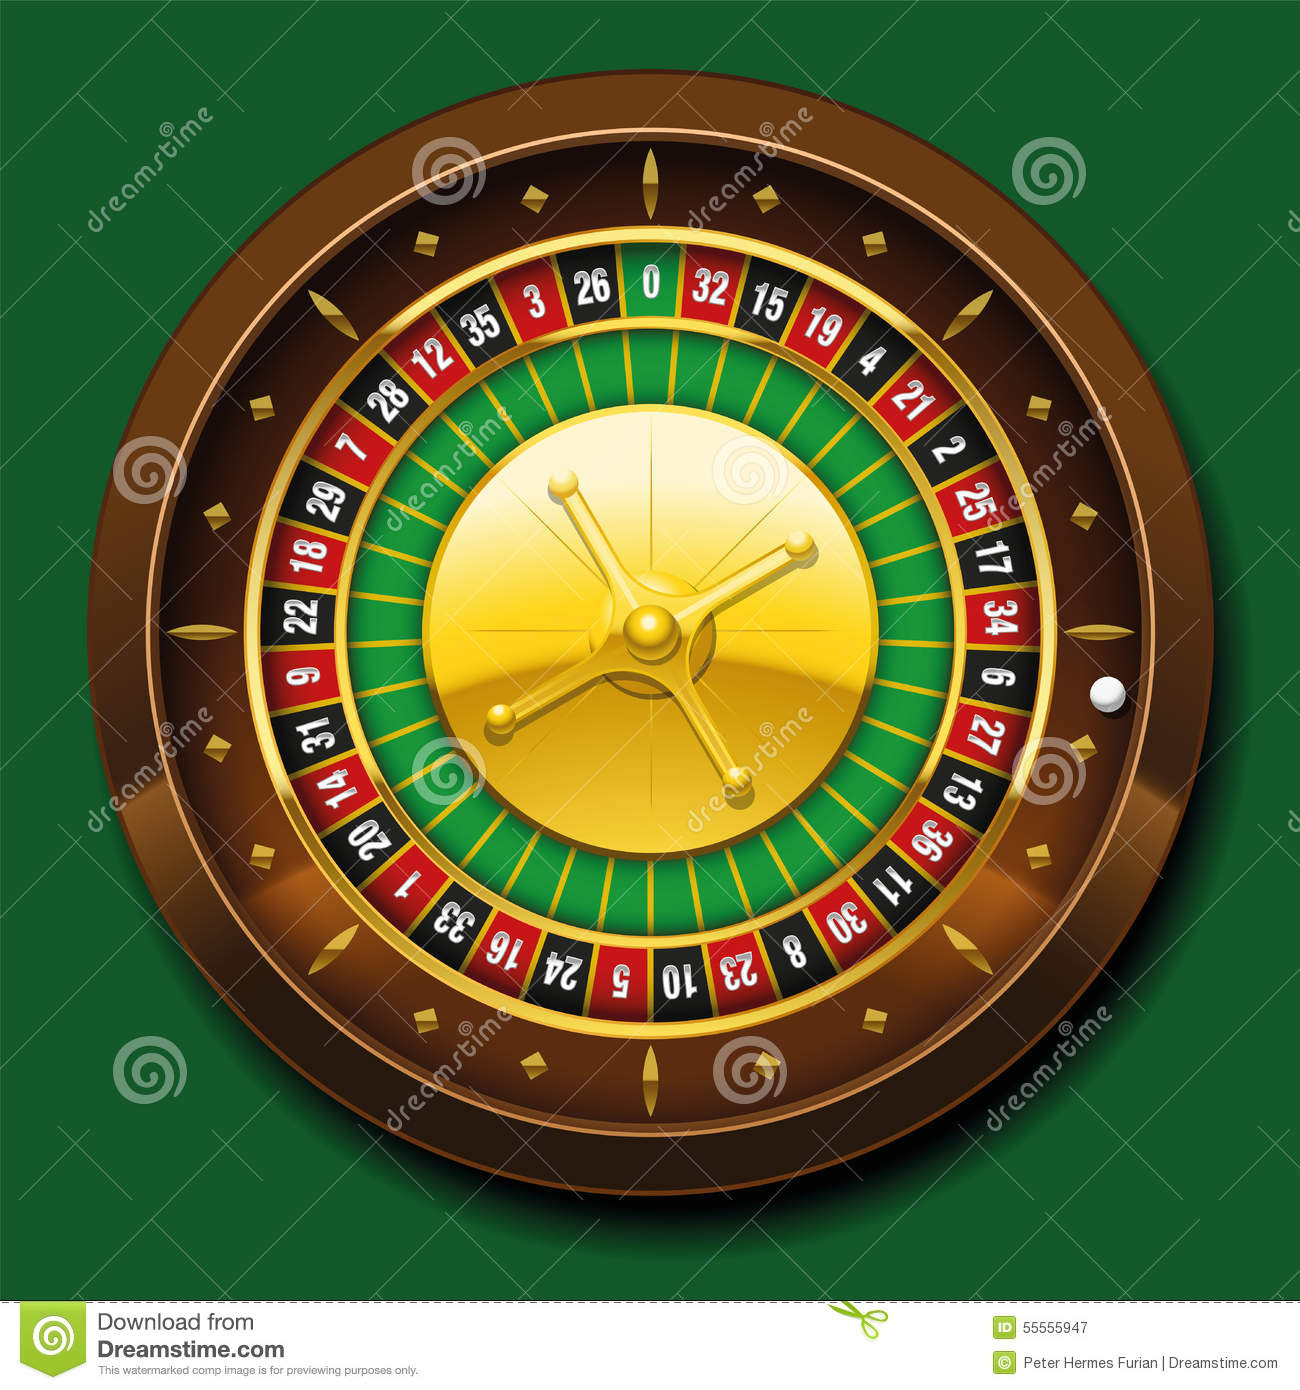 Roulette Wheel French Number Sequence